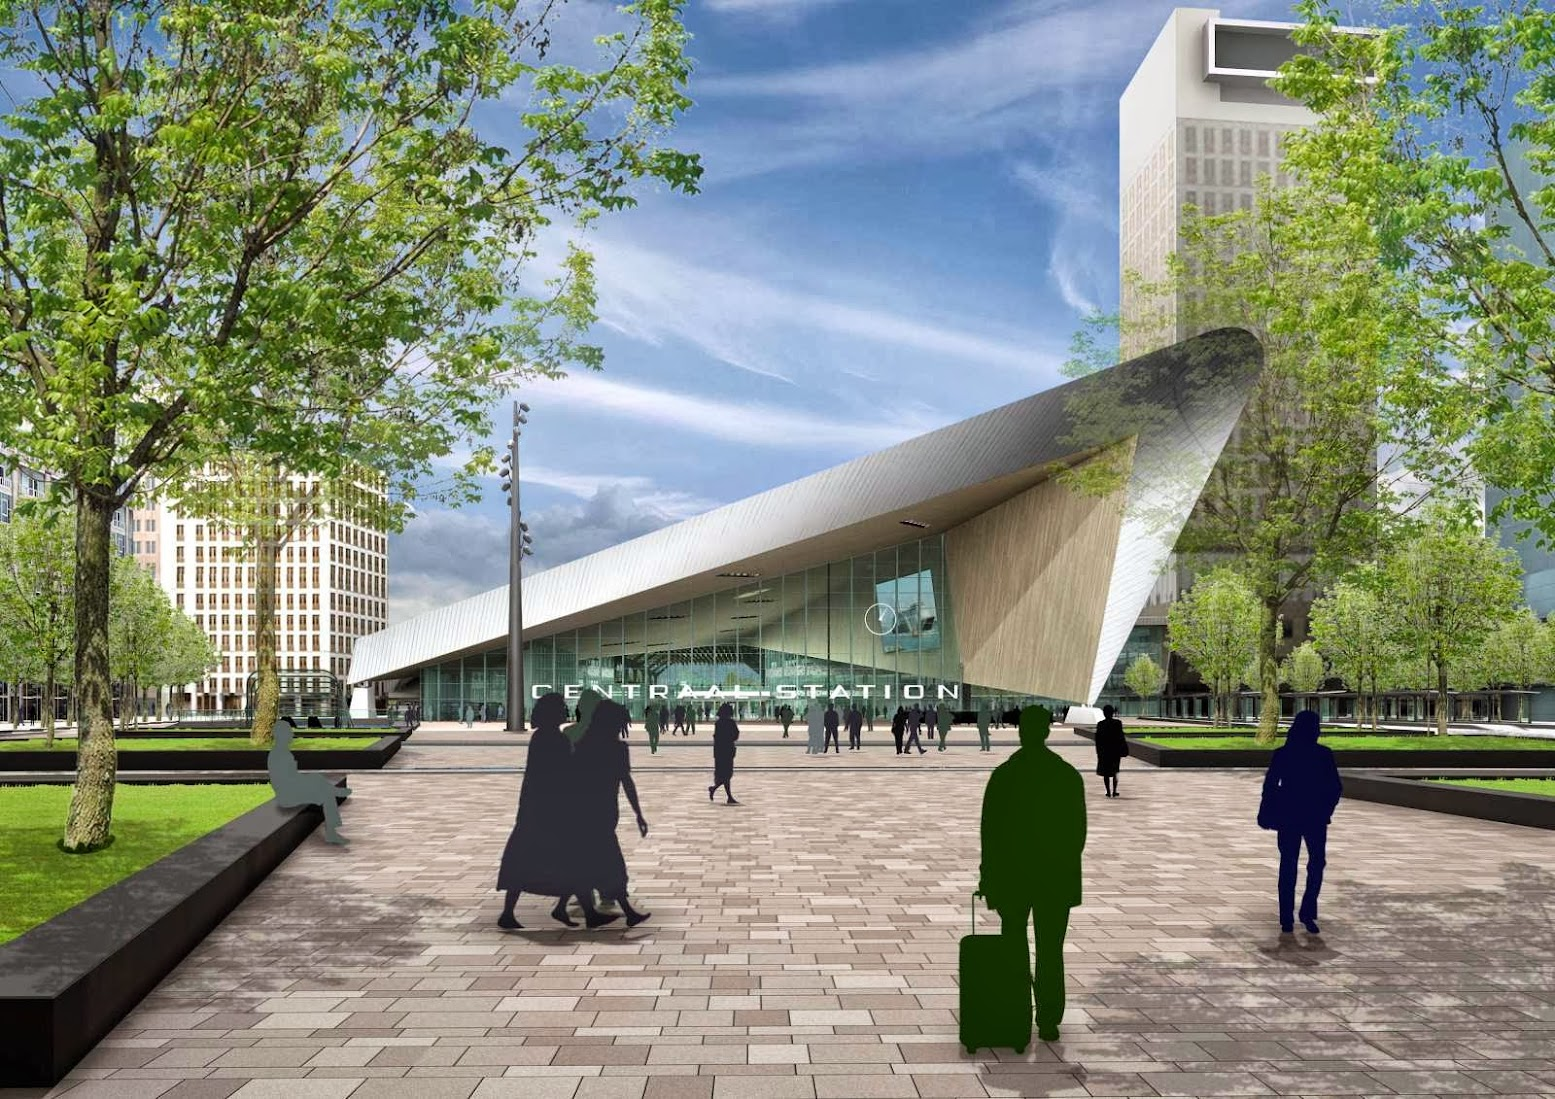 Rotterdam, Paesi Bassi: [ROTTERDAM CENTRAL STATION OPENS IN 2014]